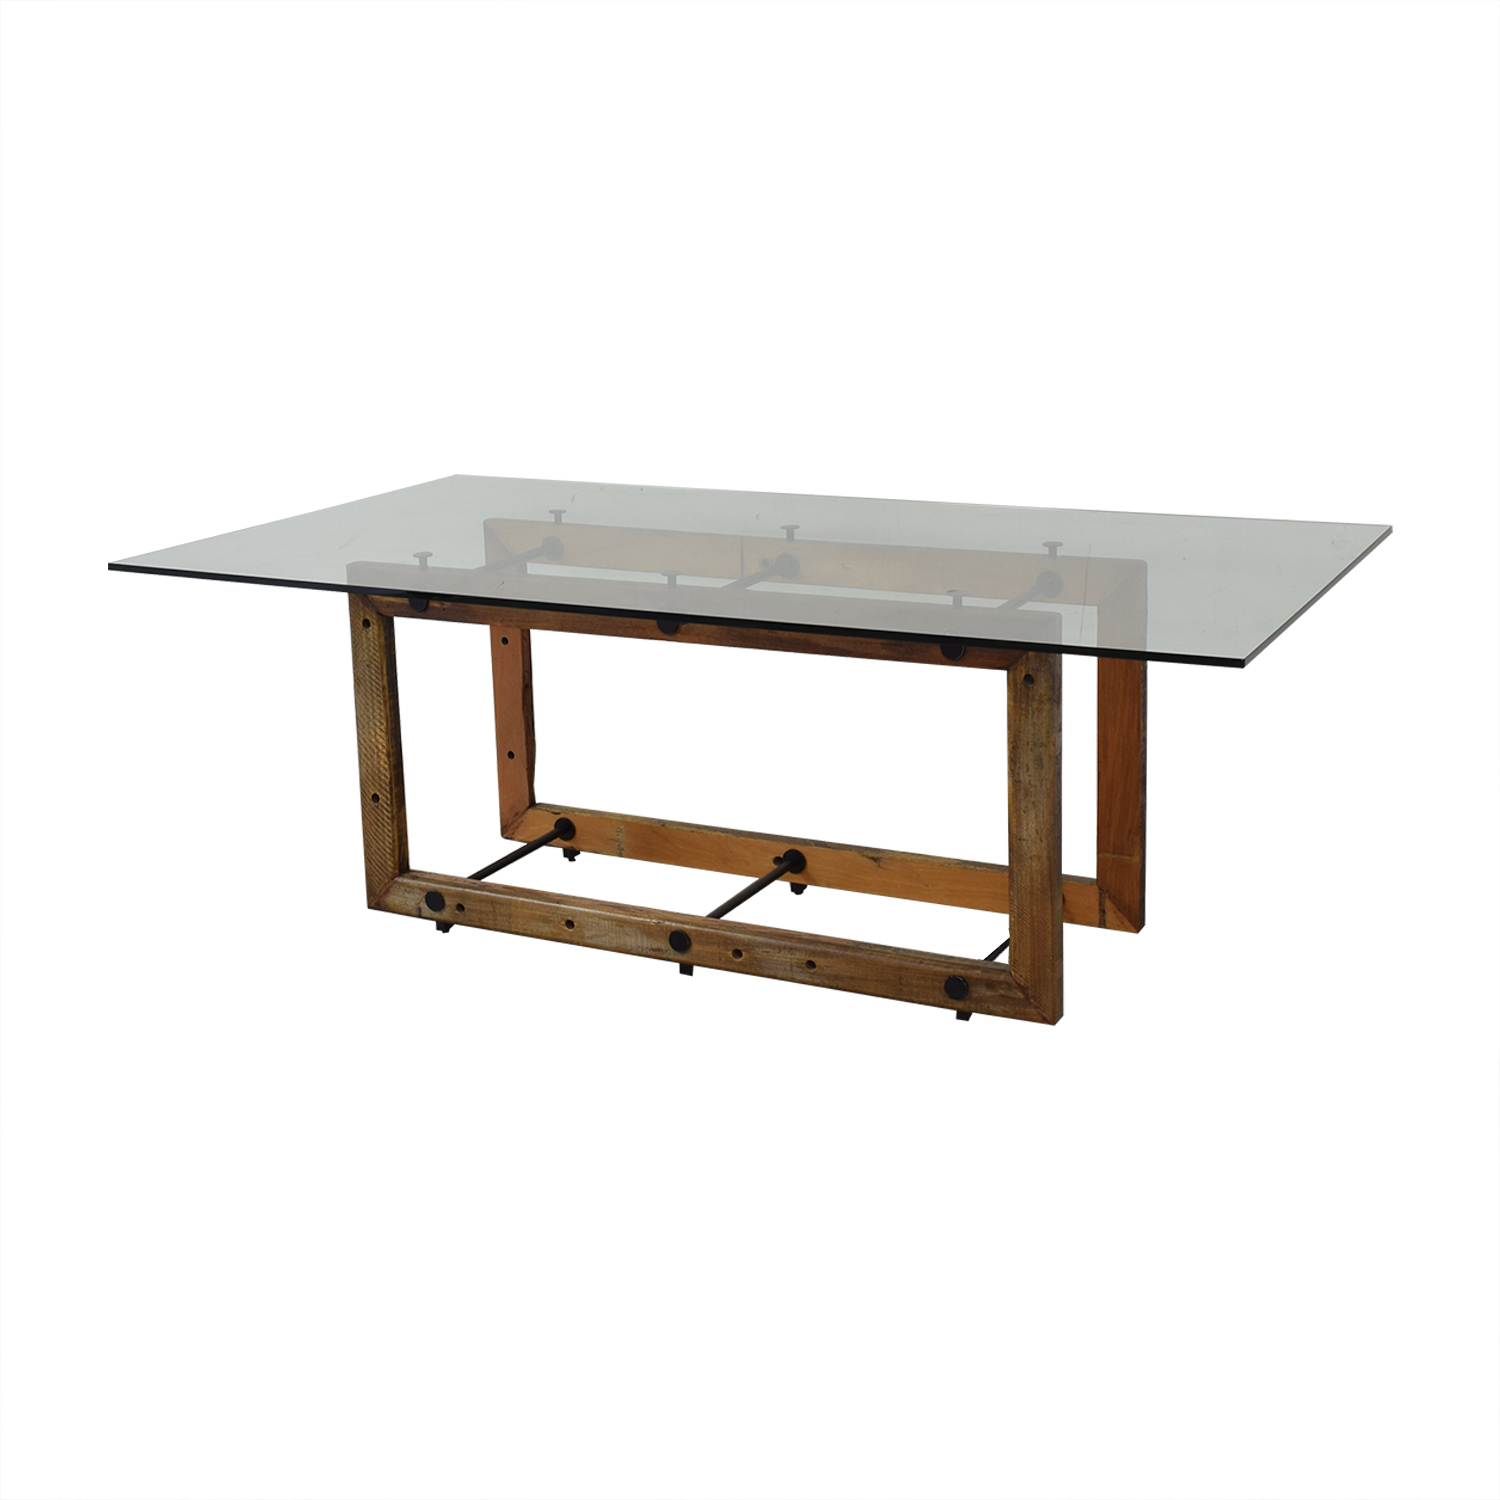 ABC Carpet & Home ABC Carpet & Home Teddy Glass Dining Table for sale